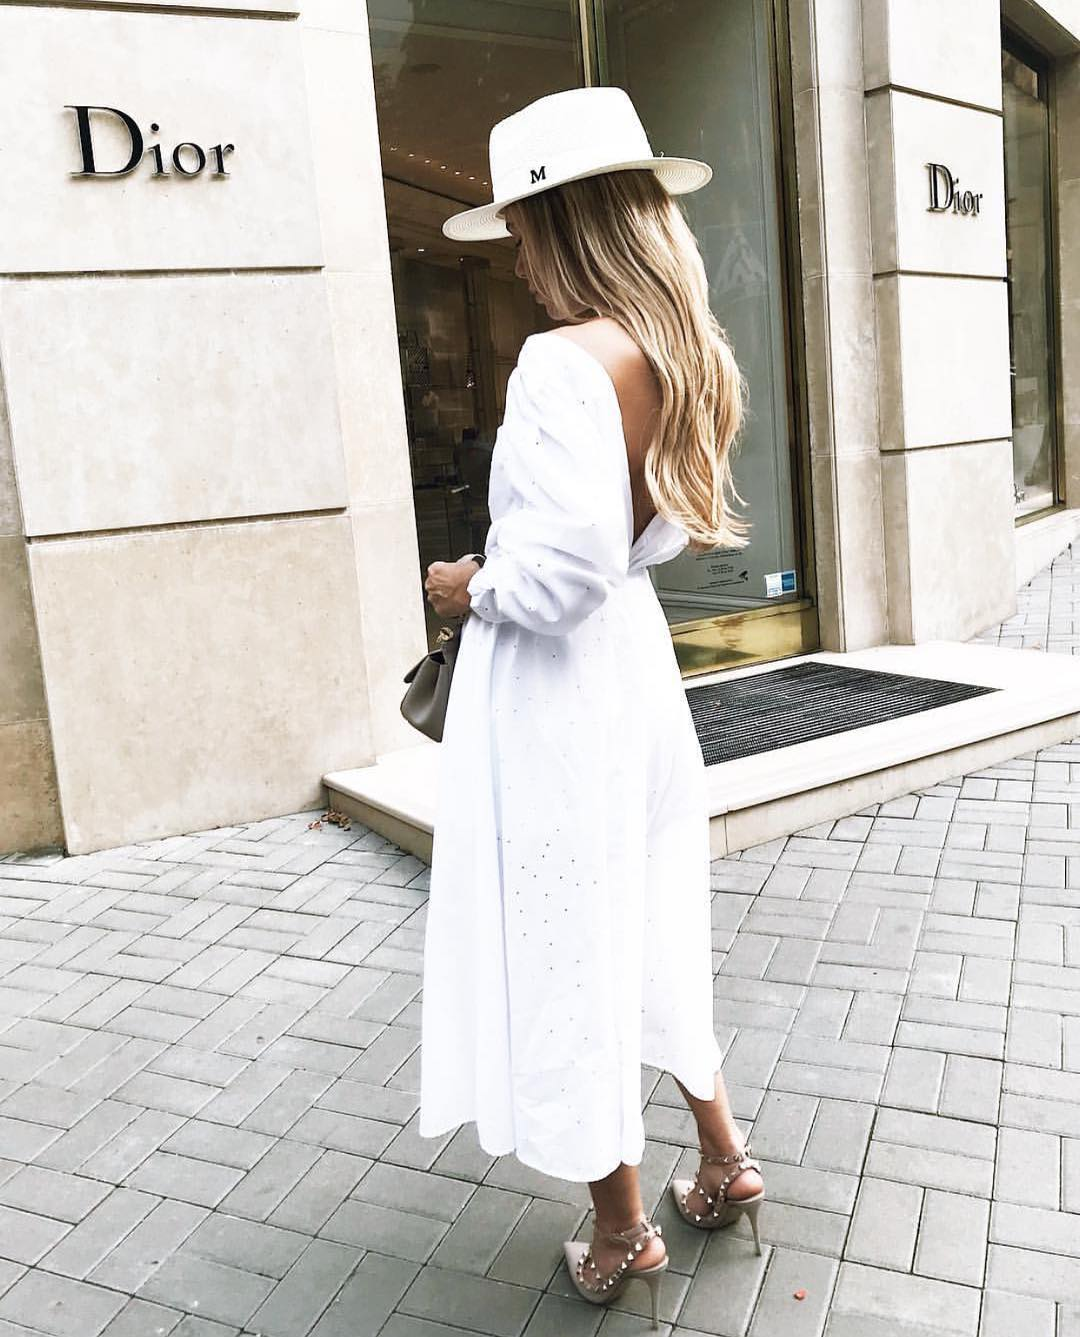 V Open Back White Ankle Length Dress And White Fedora Hat For Summer 2020